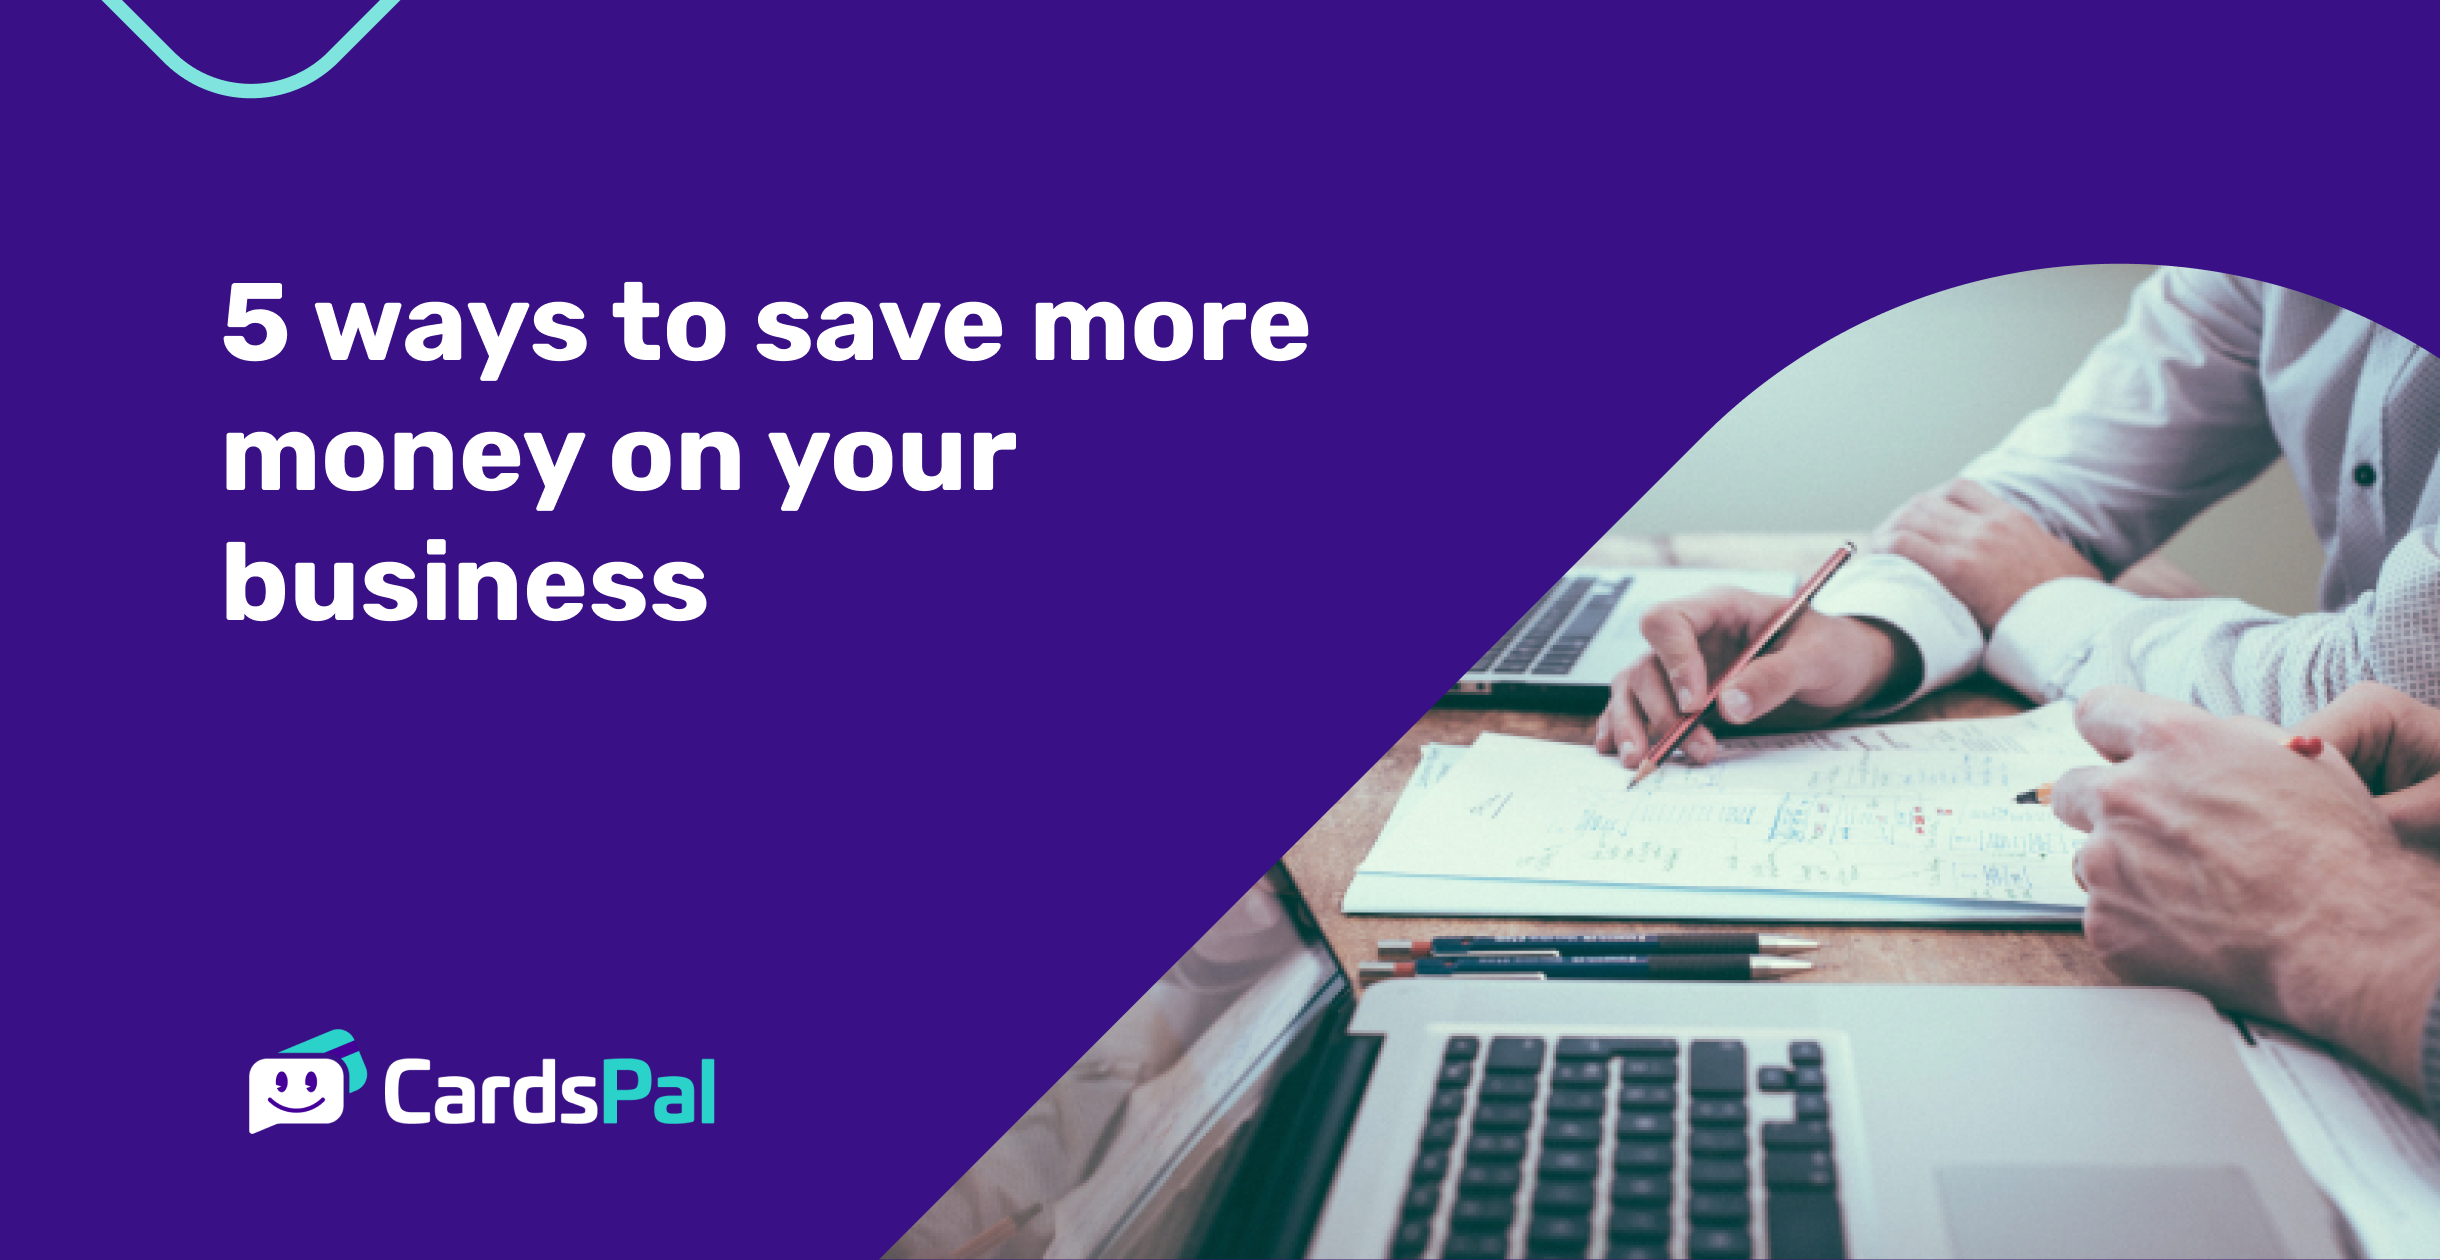 5 ways to save more money on your business